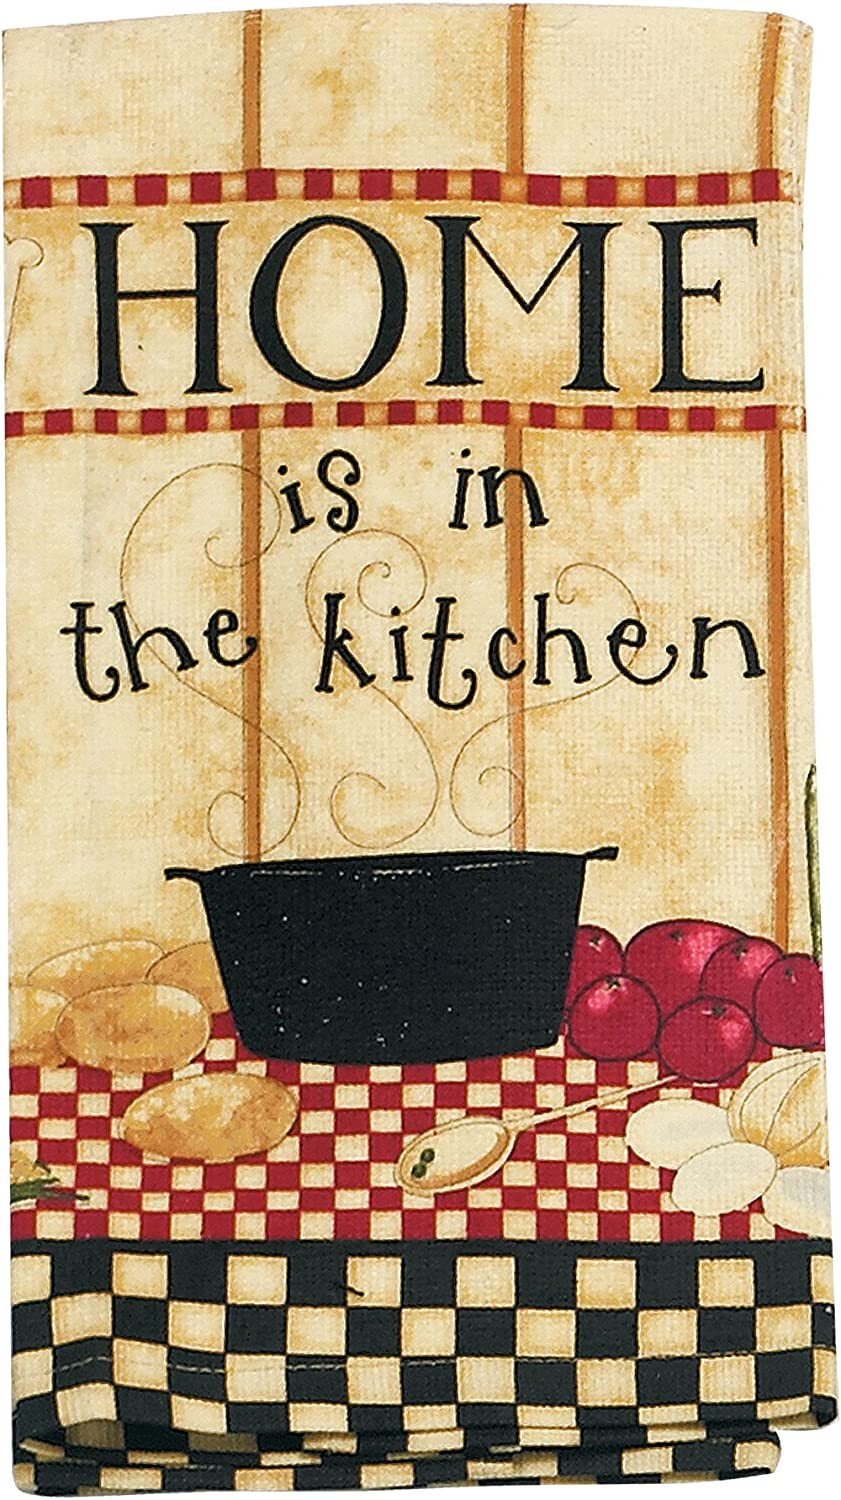 Kay lowest price Dee Designs R1270 Home is The Rapid rise Towel Kitchen Terry in